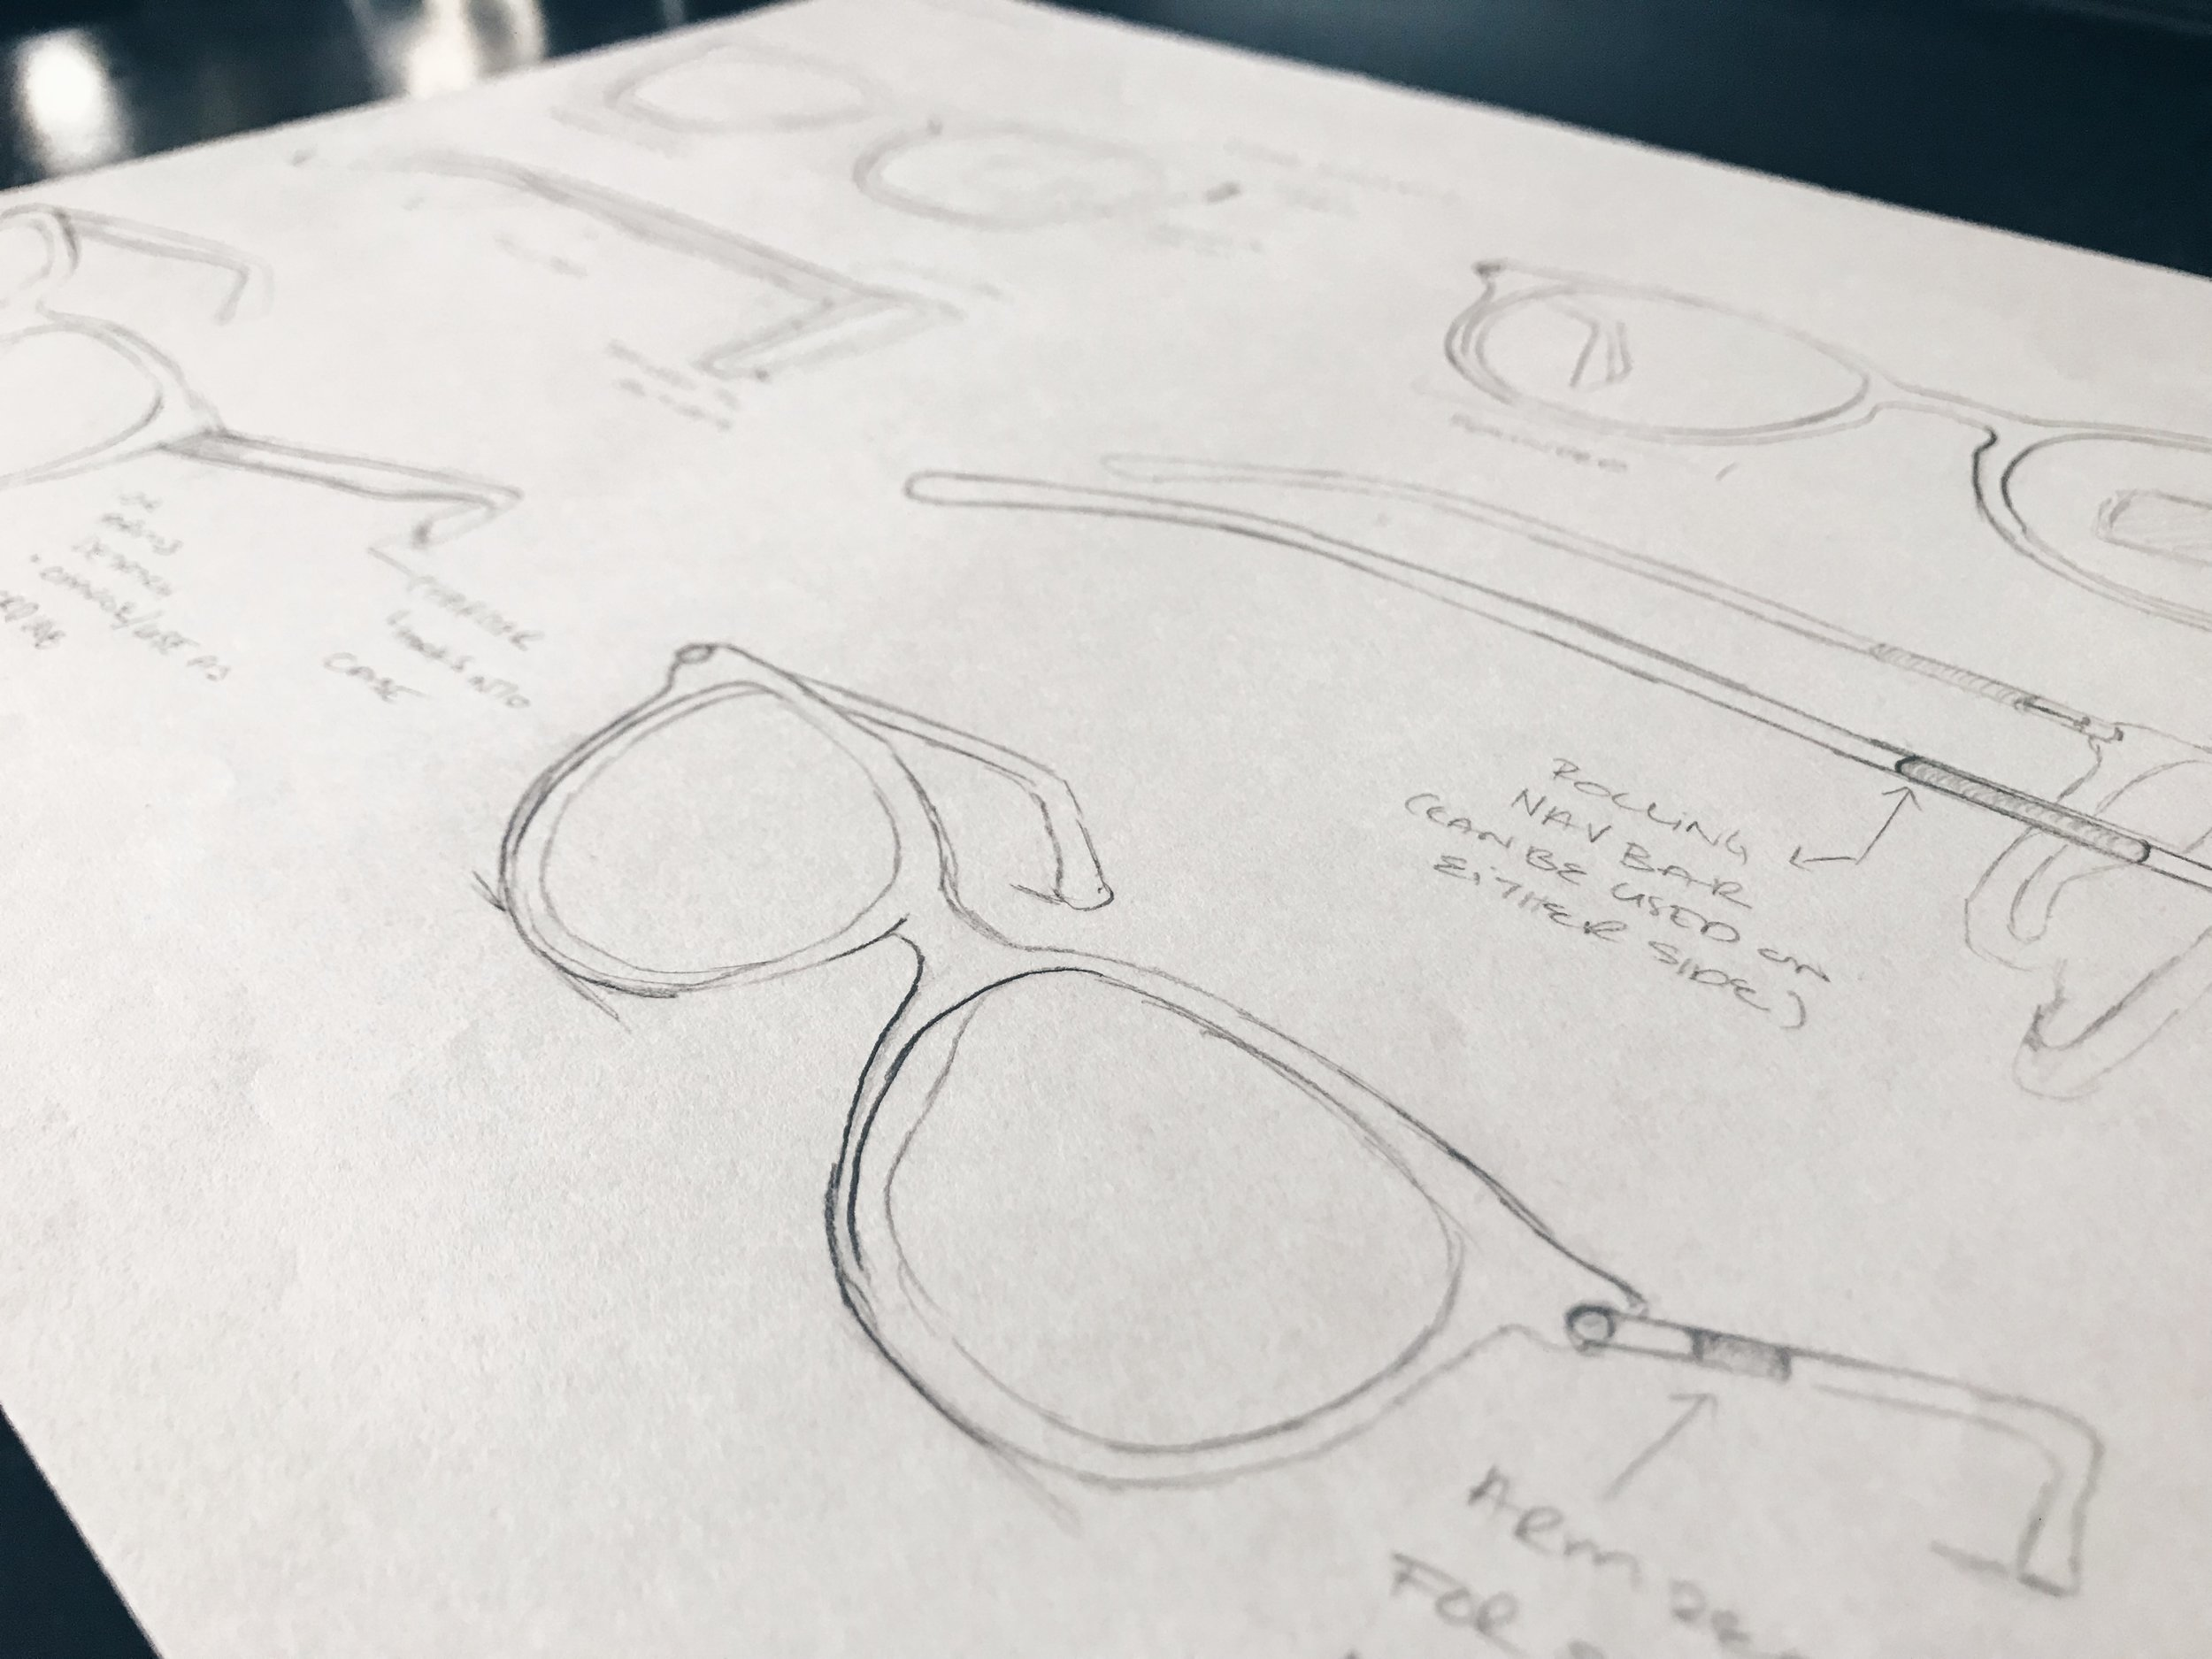 Initial product design sketches - While designing the user interface, I hit a wall. How would people be interacting with this device? I began to go through iterations of product designs. I needed to determine how users would interact with the interface. I went through, talk-activation, a touchpad through the arm of the glasses, and even eye tracking technology, but settled on something a little different. I decided to develop a ring for navigation. This capacitive sensor ring enables discreet easy access use, that doesn't require the users to lift a hand.